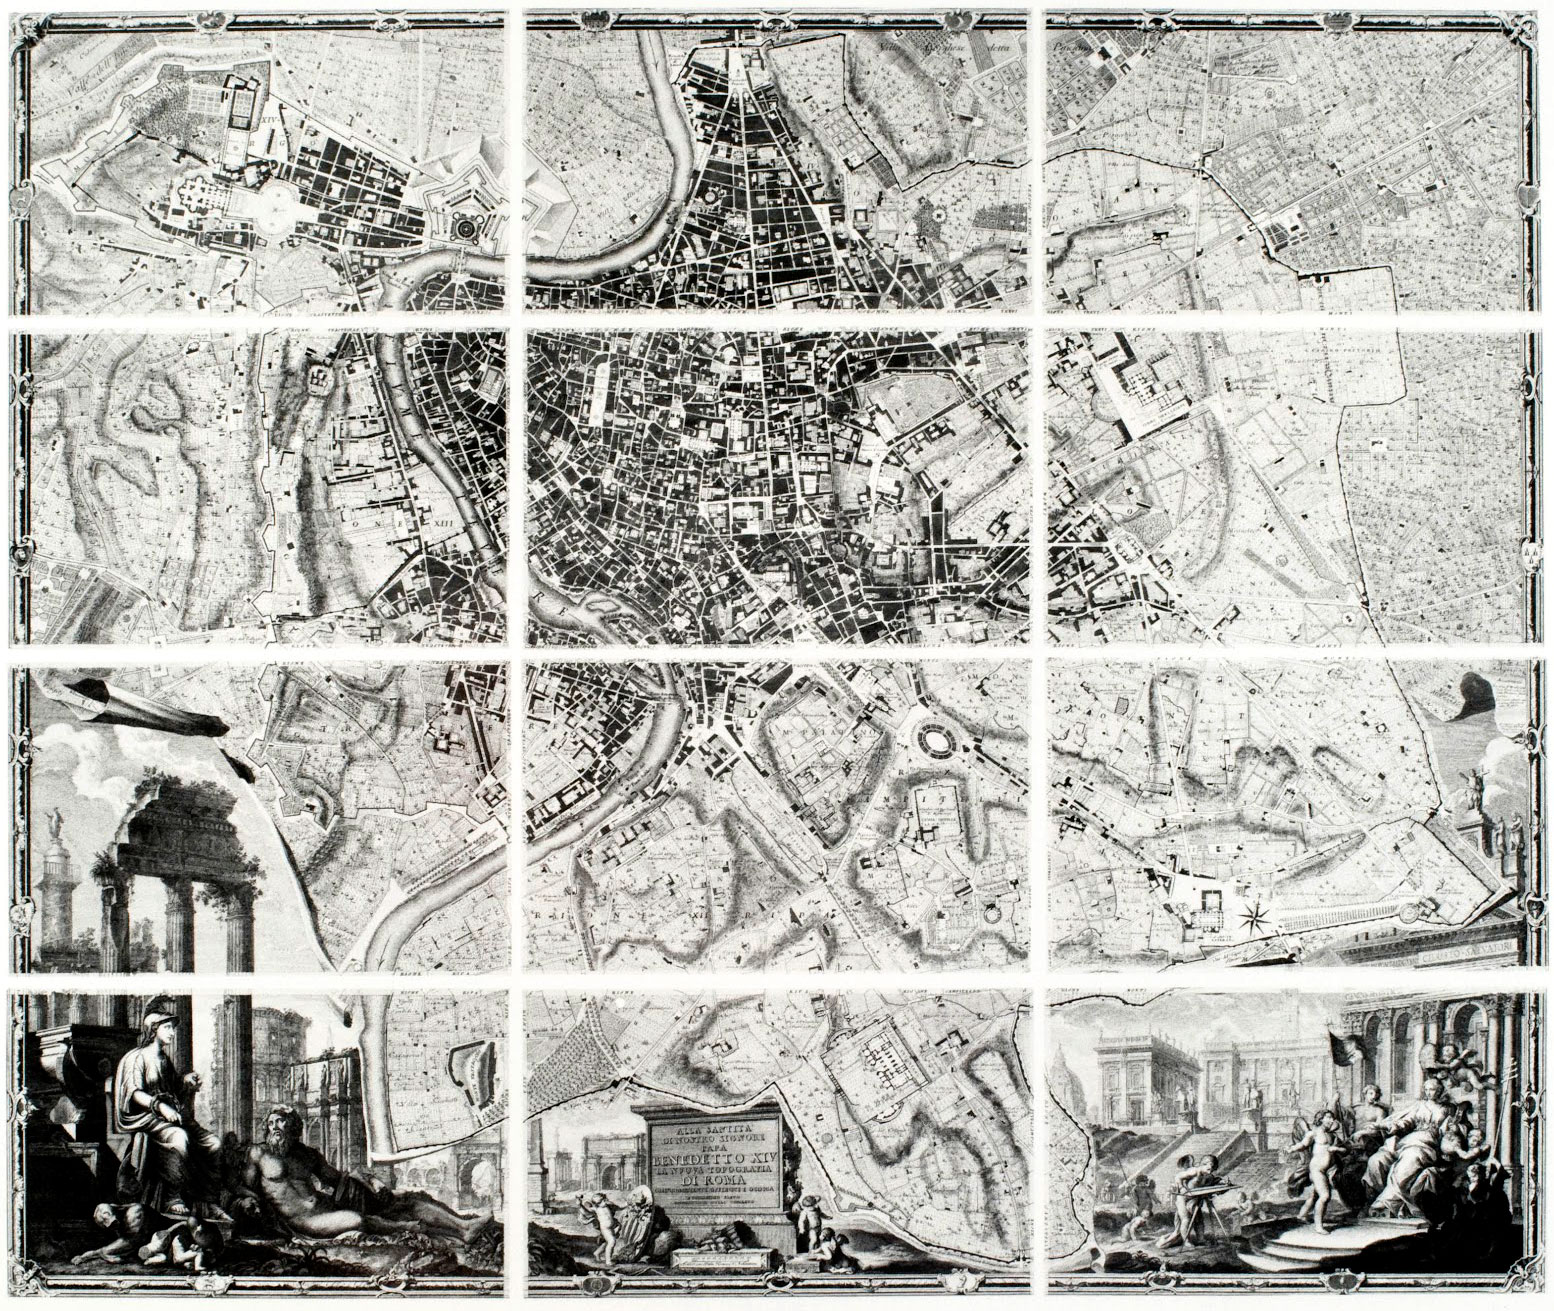 The Nolli map on 12 copper plates.